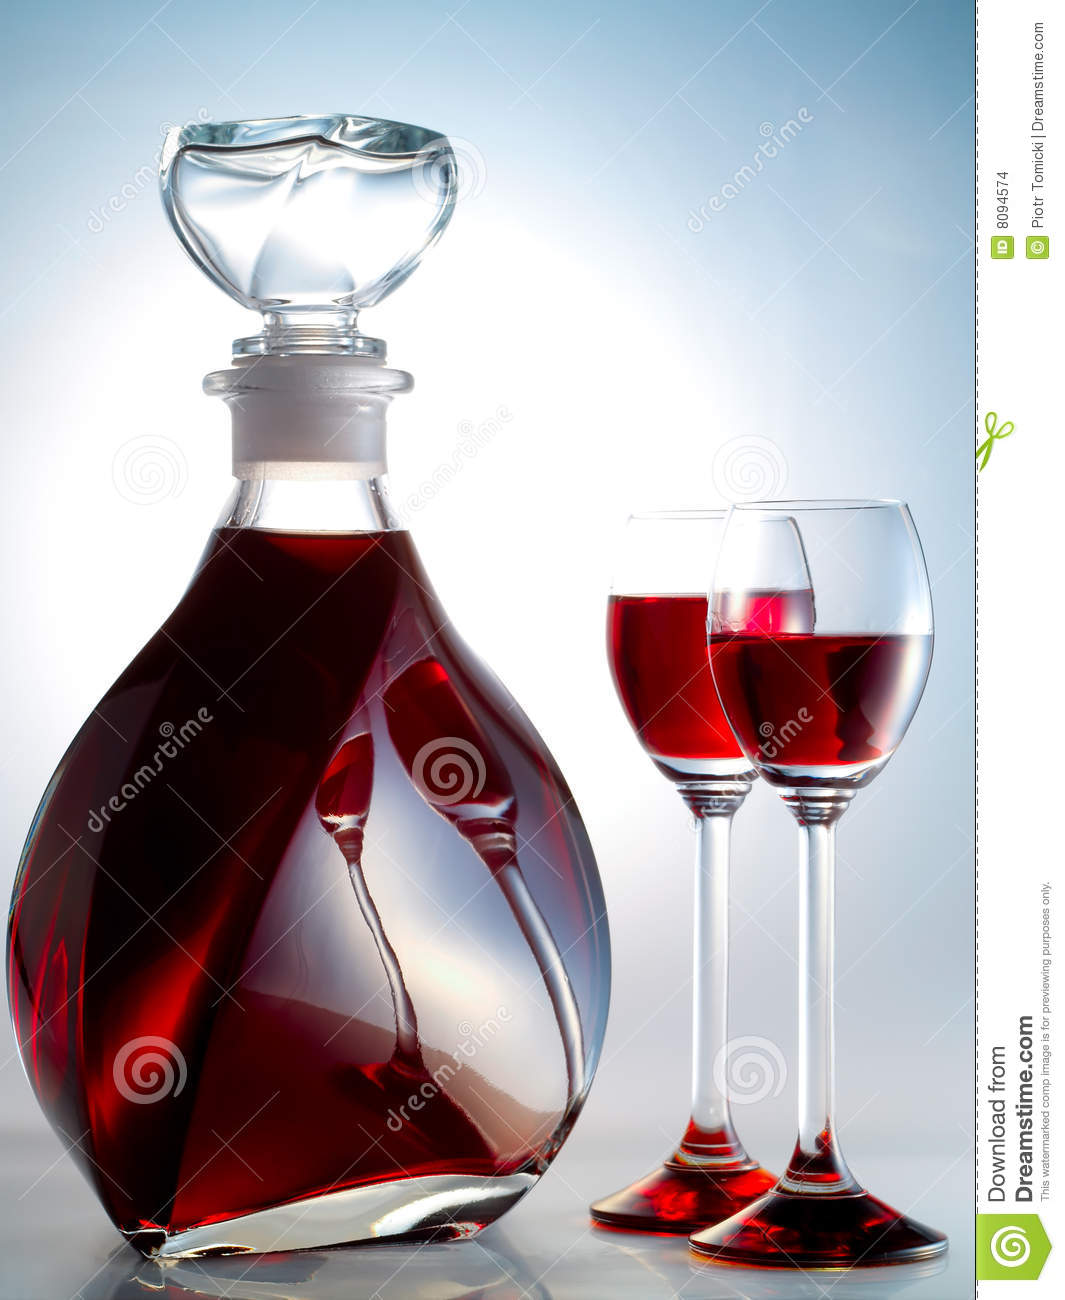 Decanter filled with liquor